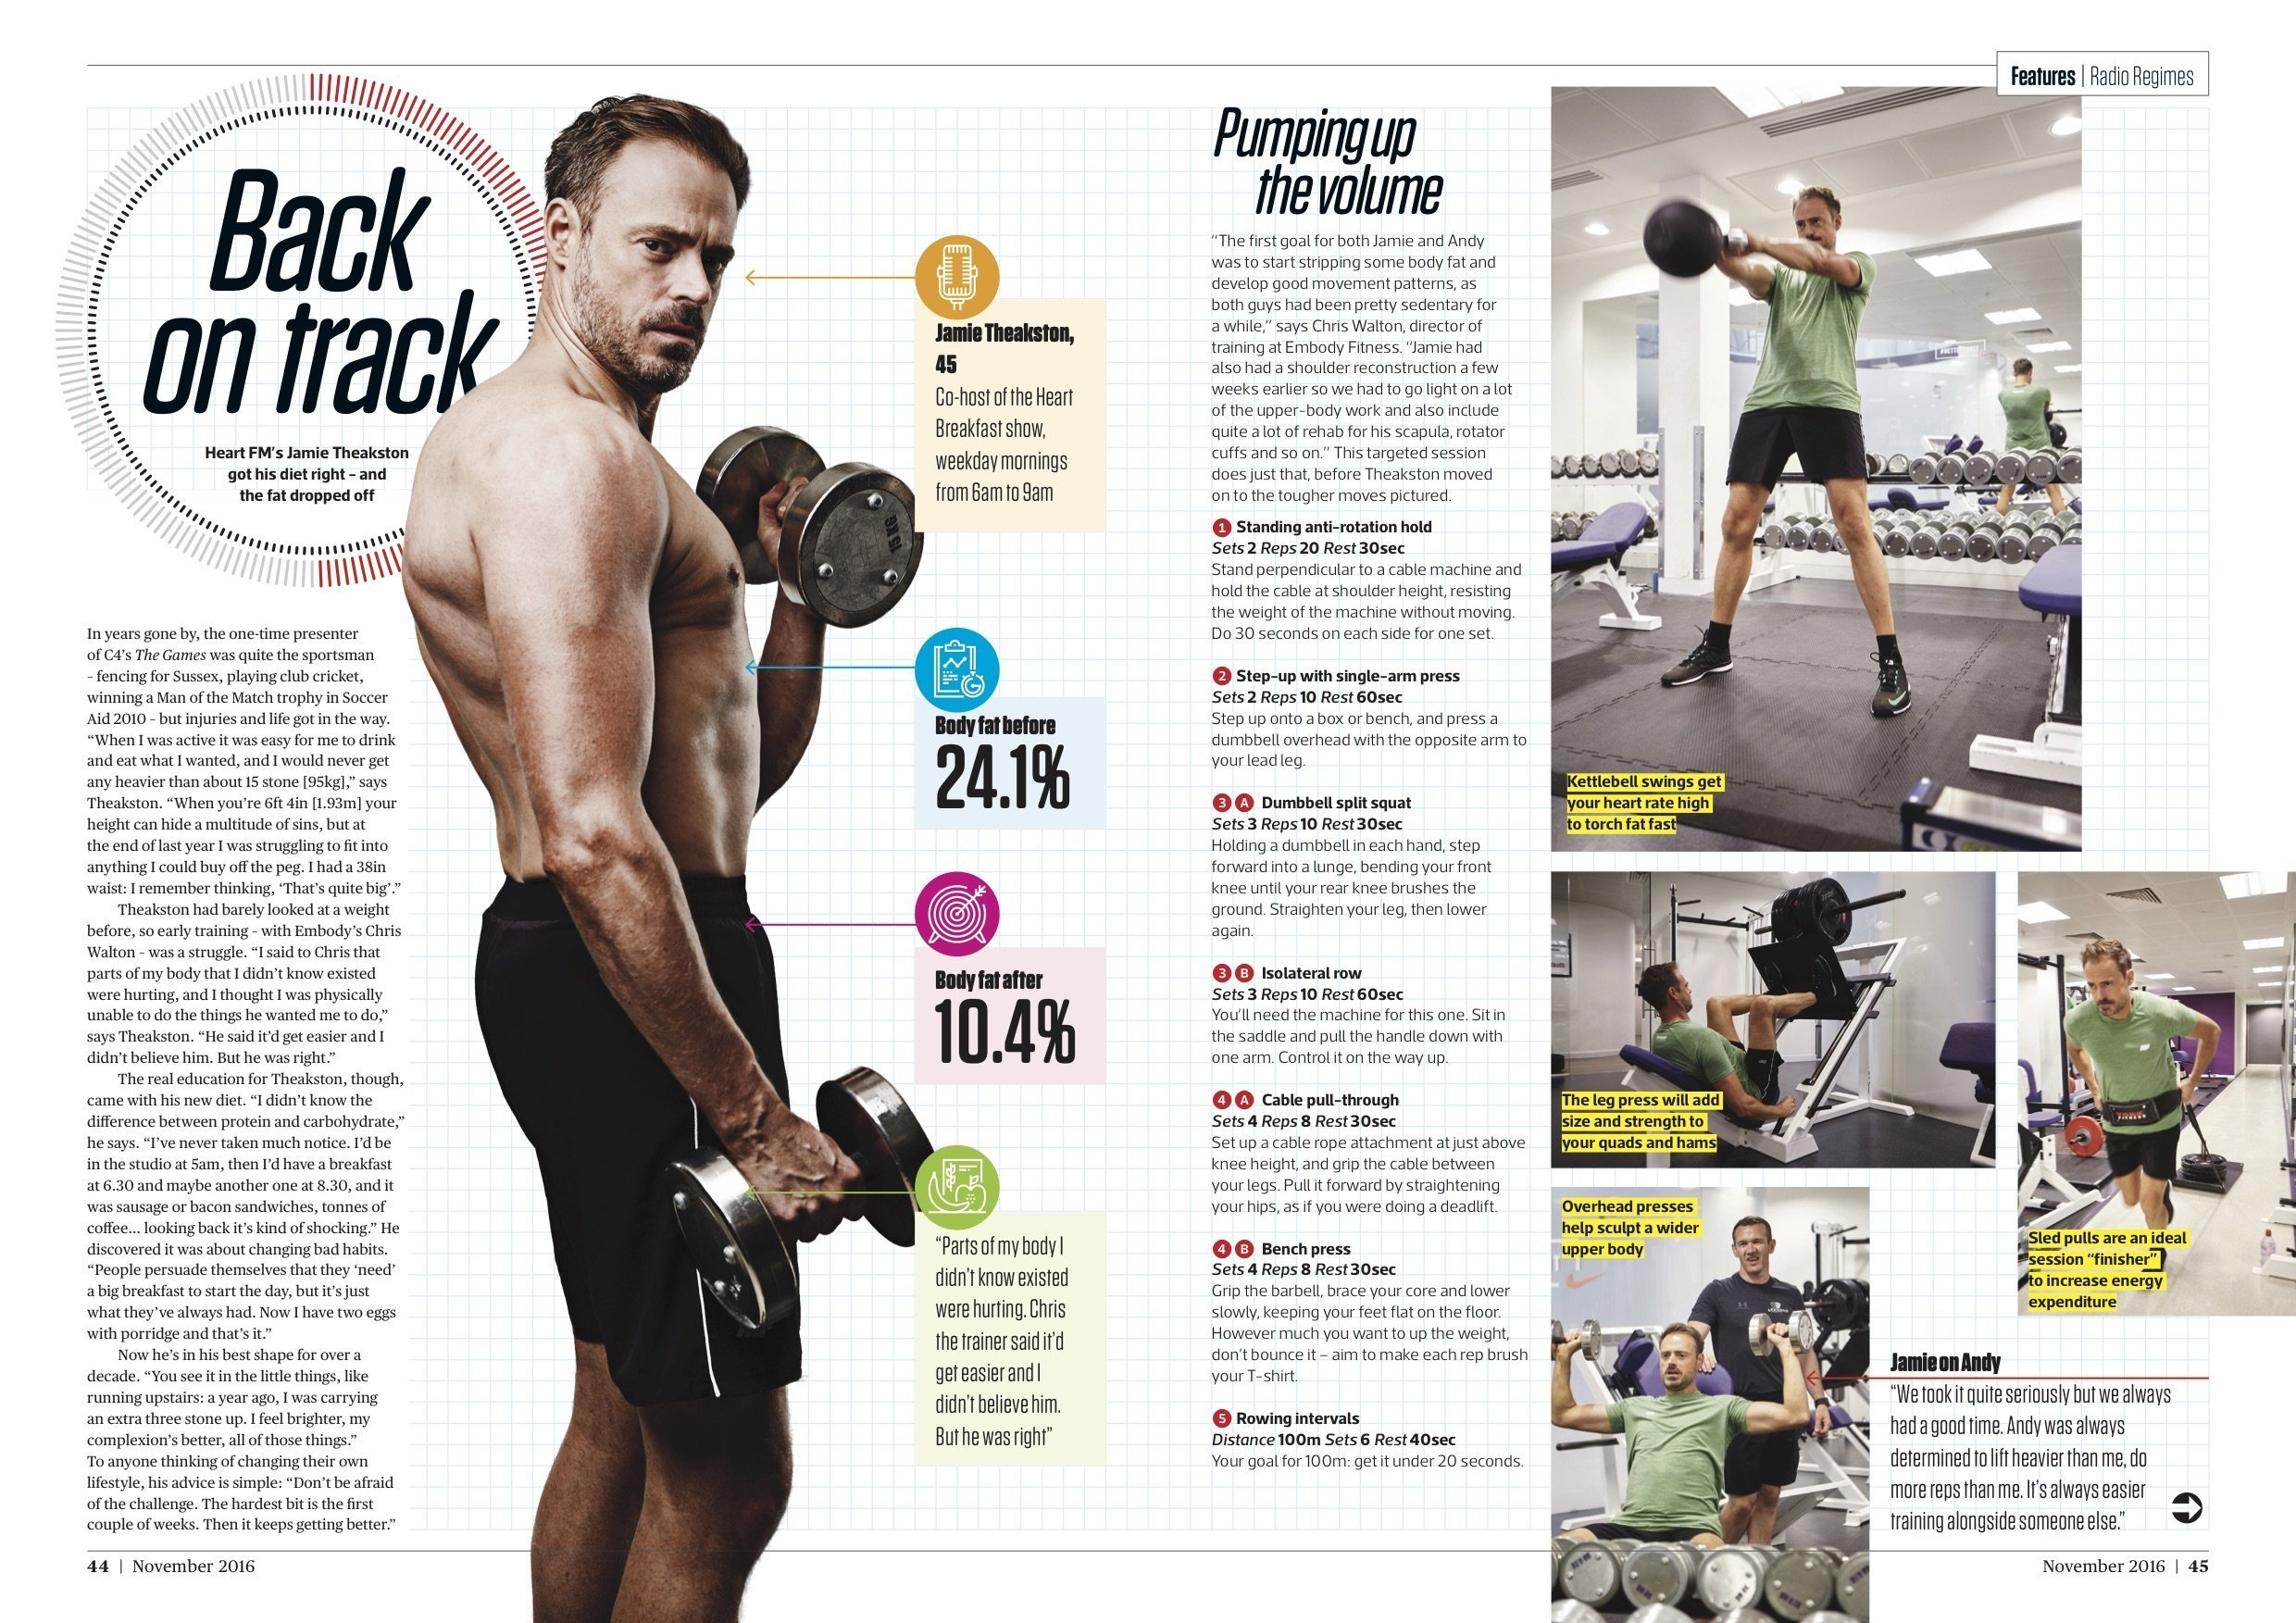 Personal Training Trainer London | Men's Fitness feature Jamie and Andy's Transformation Challenge October 6th, 2016